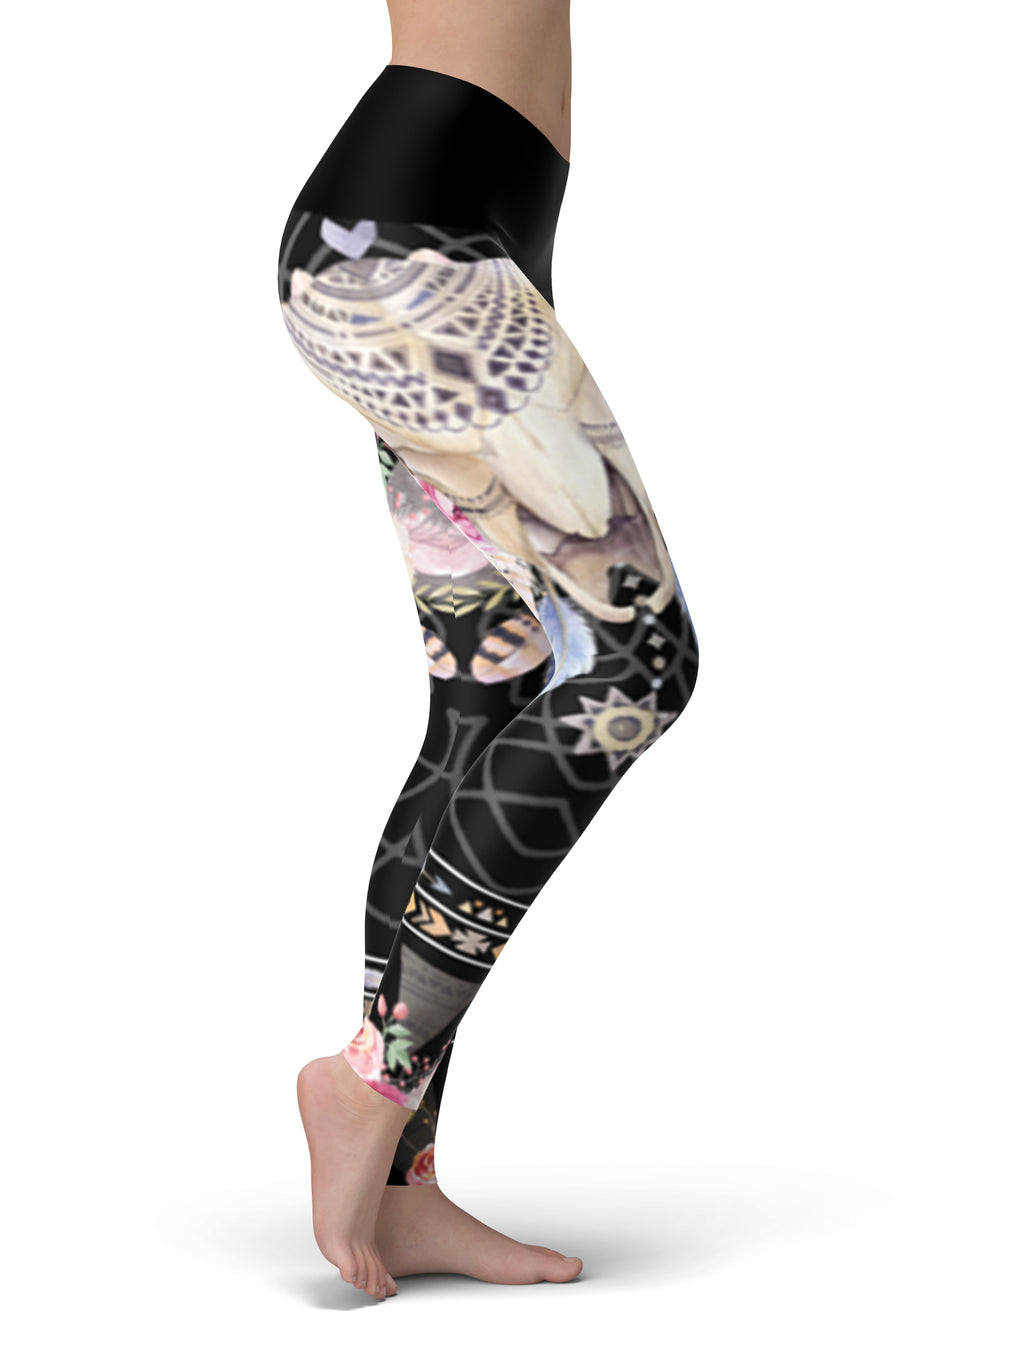 Bohemian Black Yoga Pants